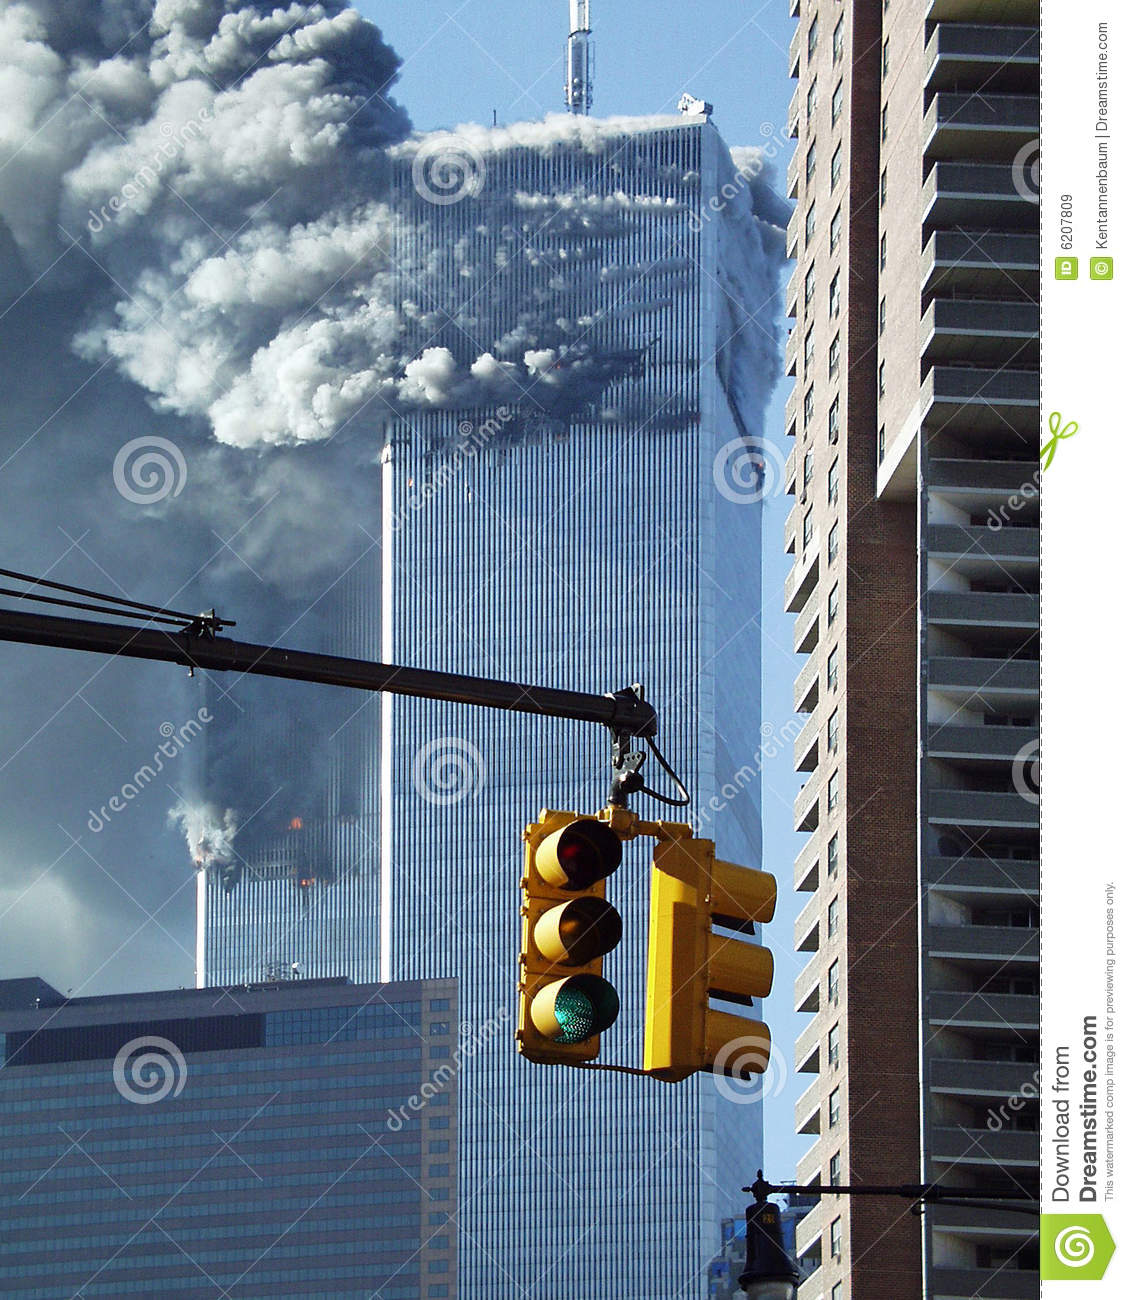 World Trade Center on September 11, 2001_2